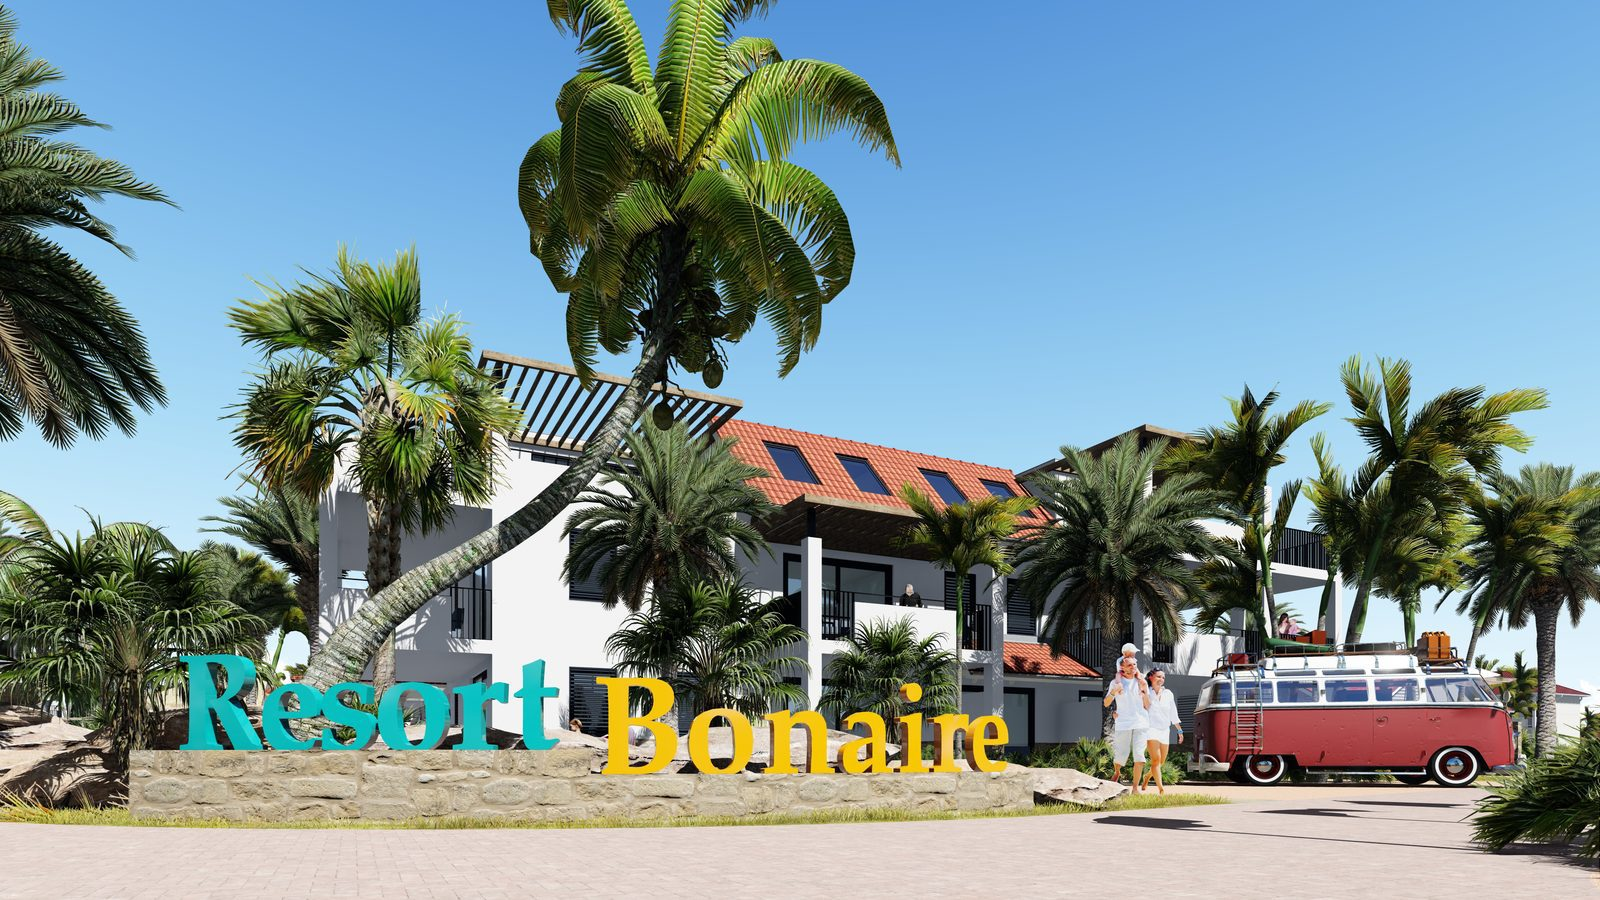 Houses for rent at Resort Bonaire, the south of capital Kralendijk. Check out our apartments and enjoy your stay.